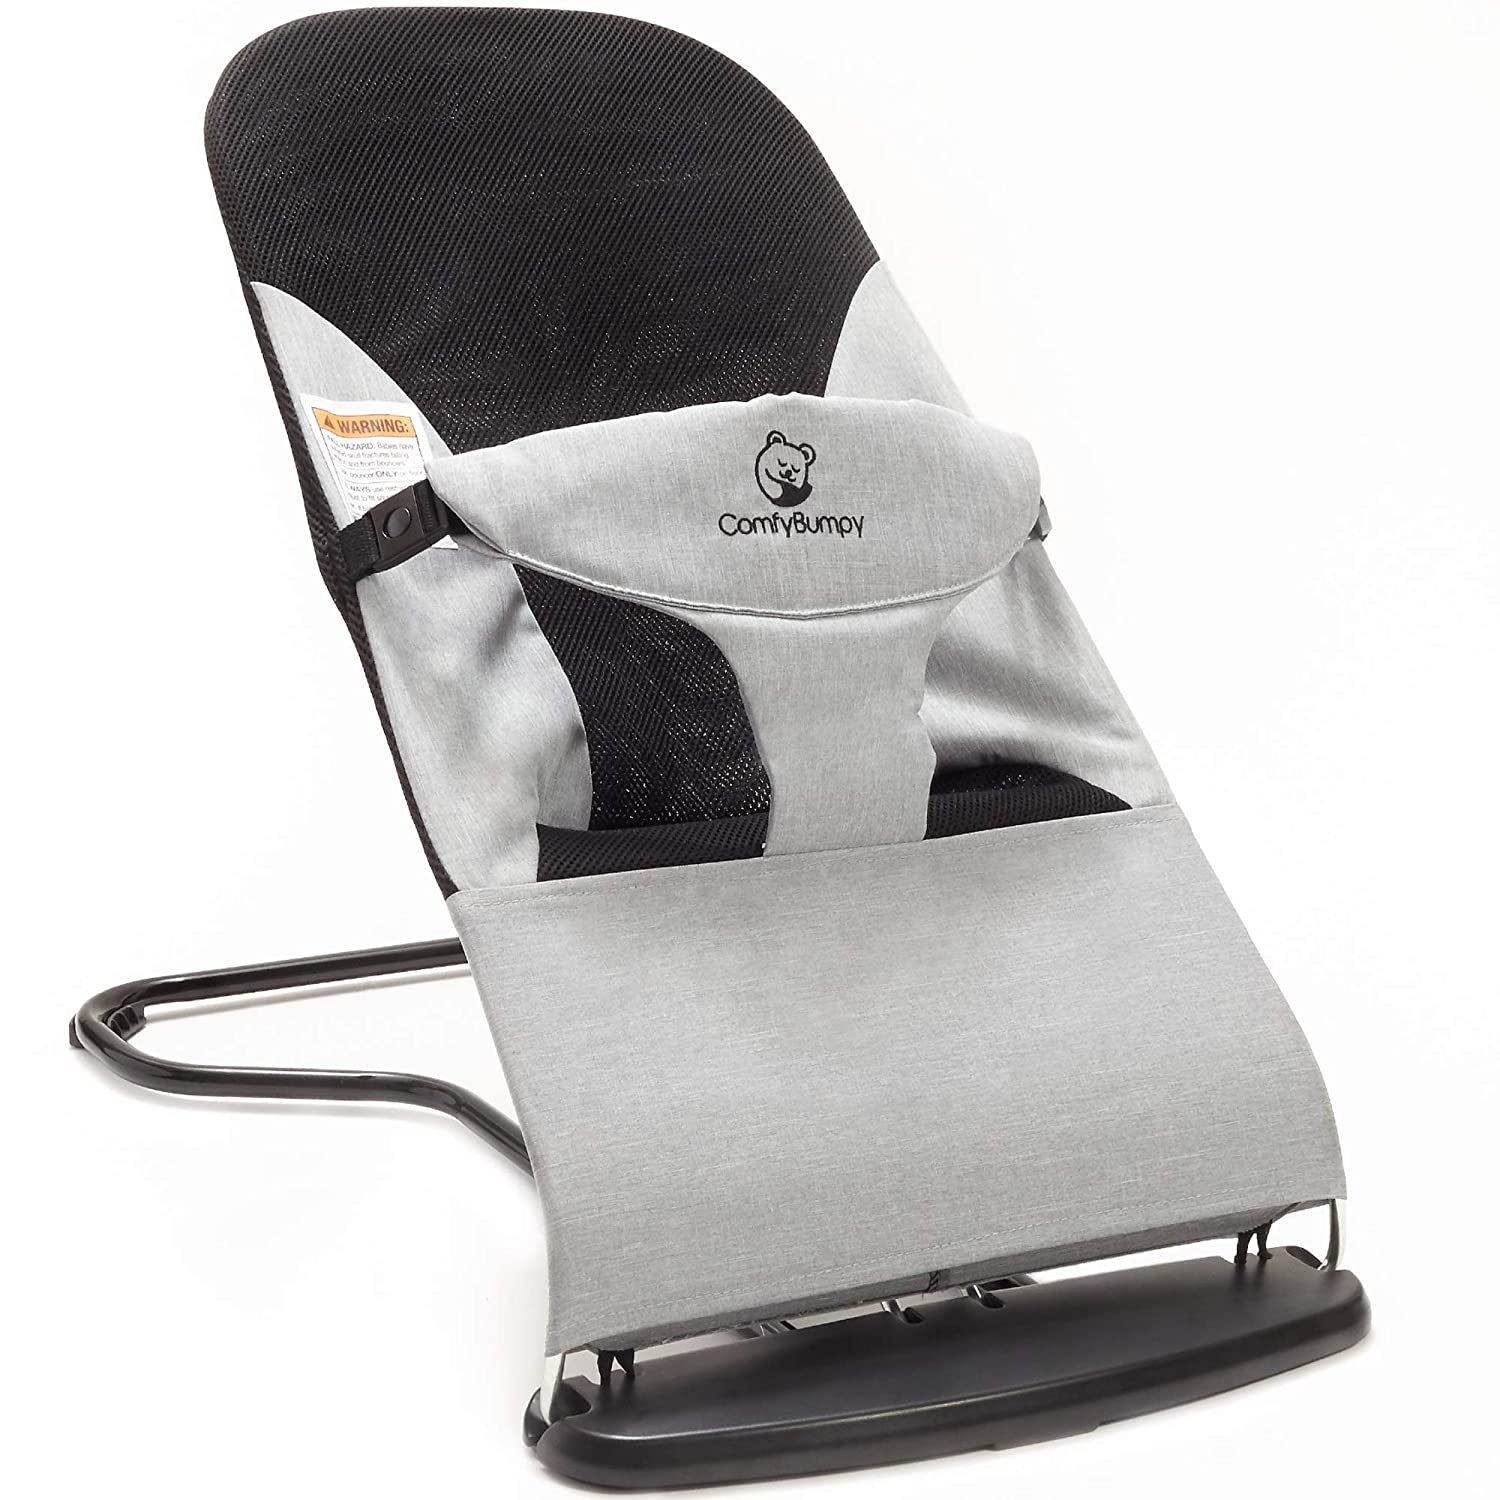 Ergonomic Baby Bouncer Seat - Bonus Travel Carry Case Included - Safe, Portable Rocker Chair with Adjustable Height Positions by ComfyBumpy